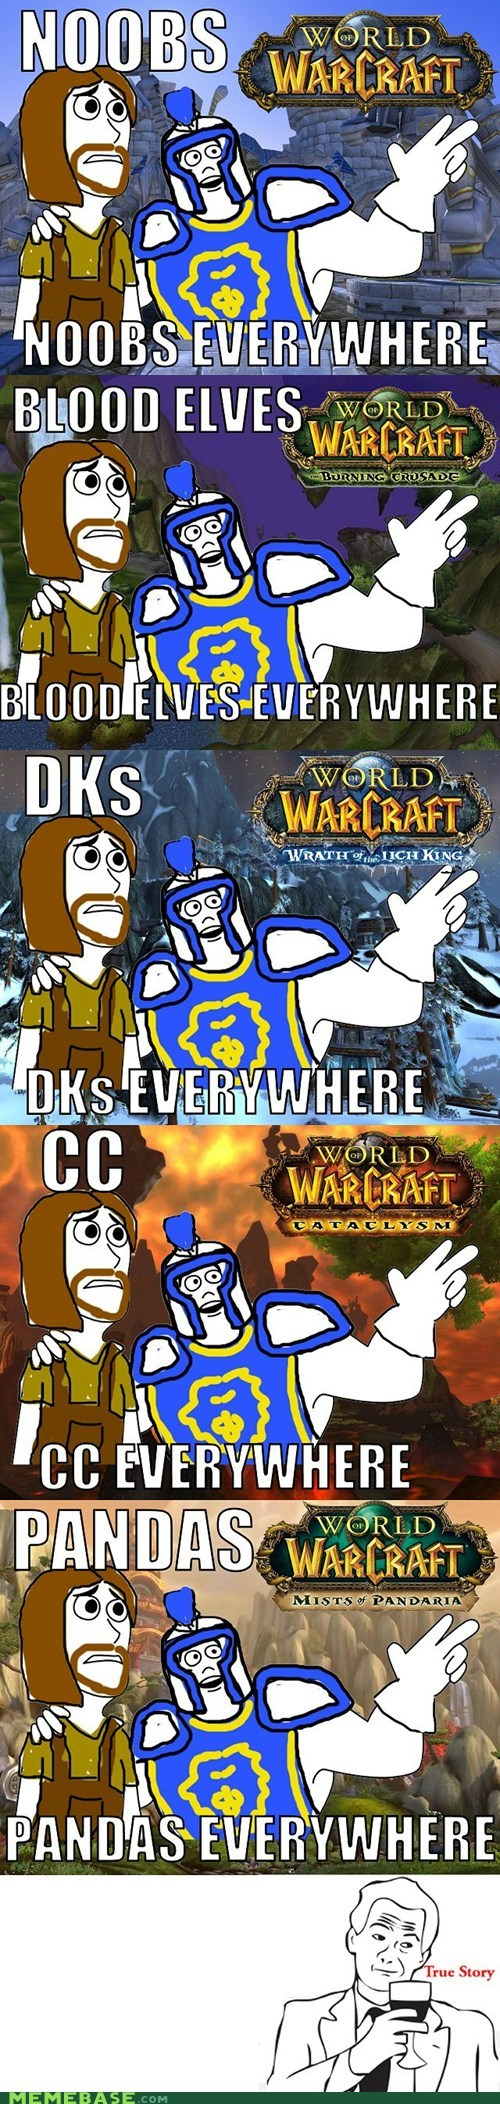 World of Warcraft in a nutshell